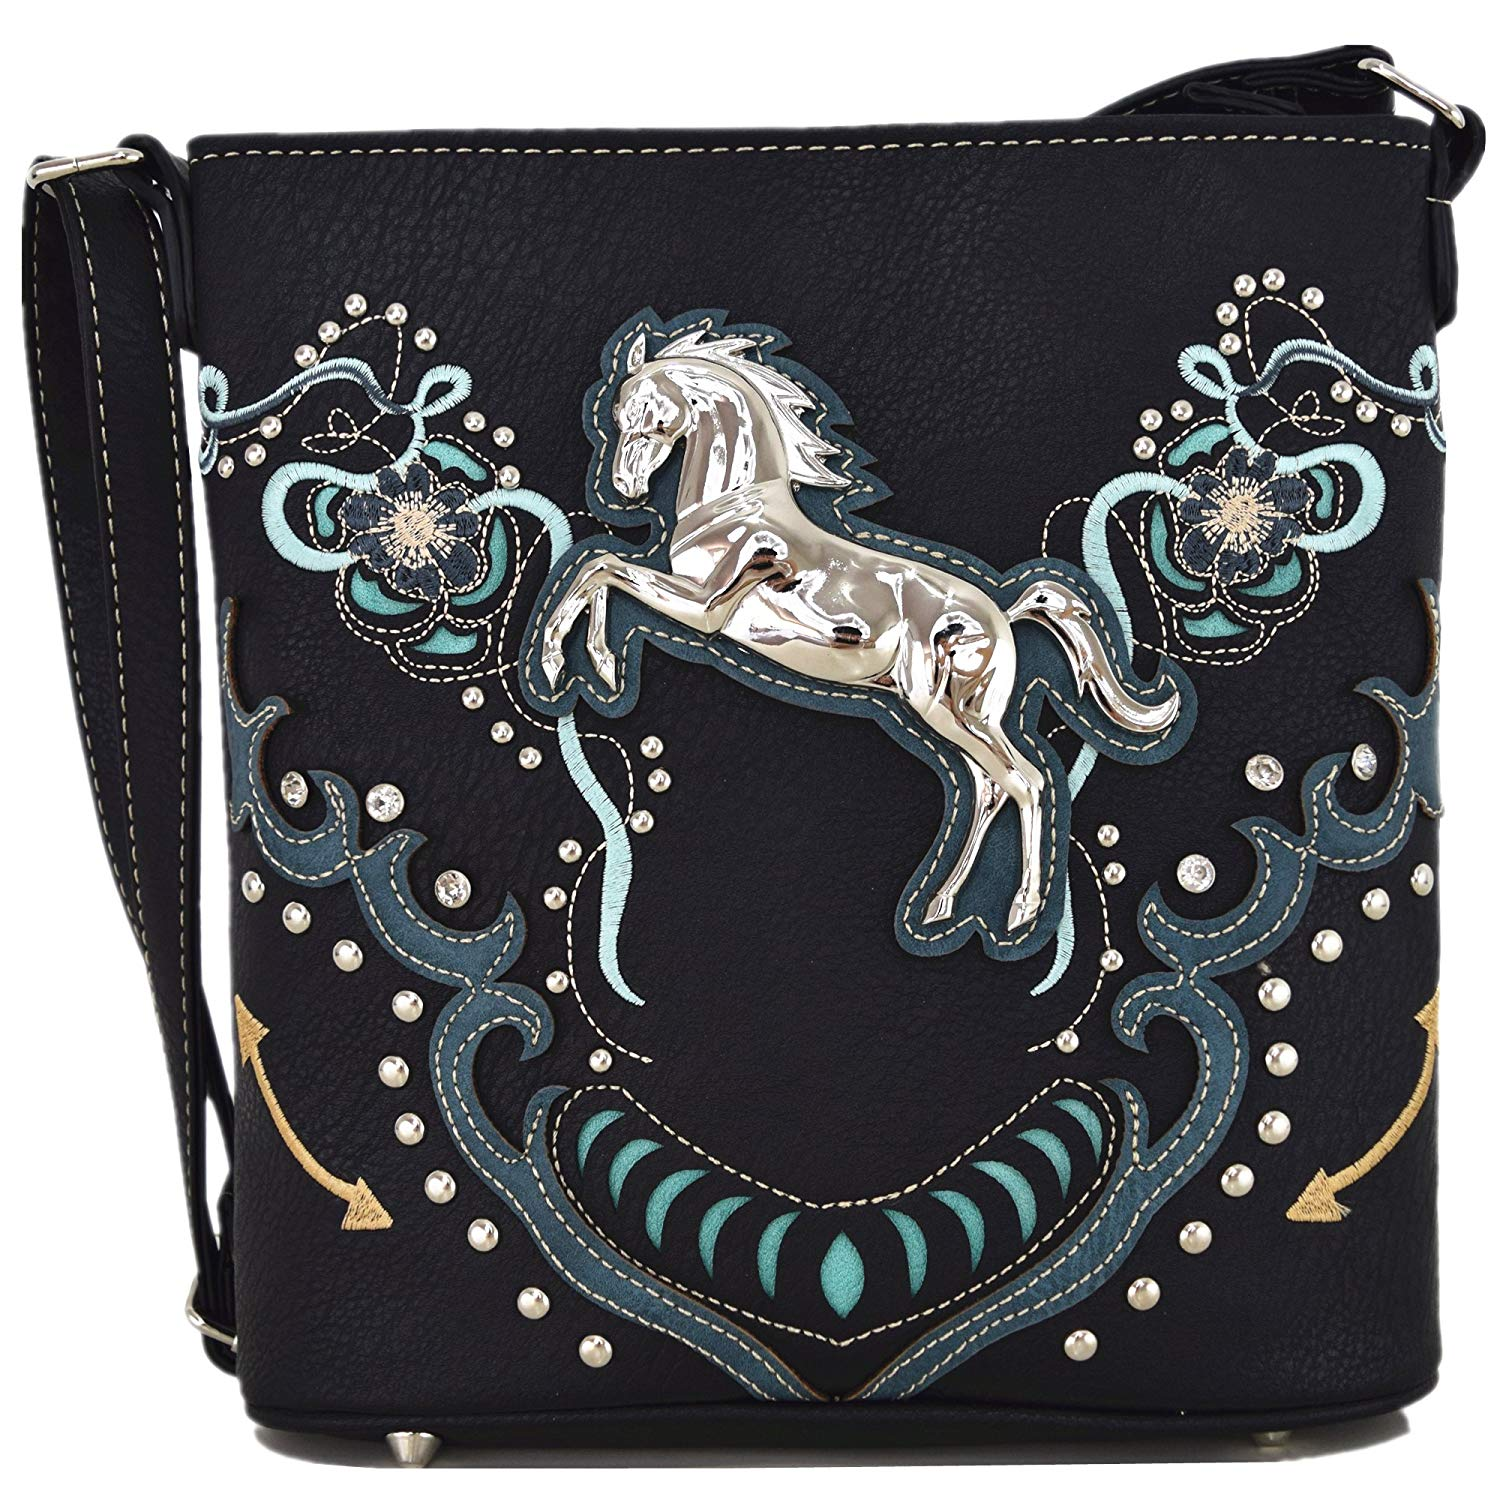 b9be4fbc1c Get Quotations · Western Cowgirl Style Horse Cross Body Handbags Concealed  Carry Purses Country Women Single Shoulder Bag